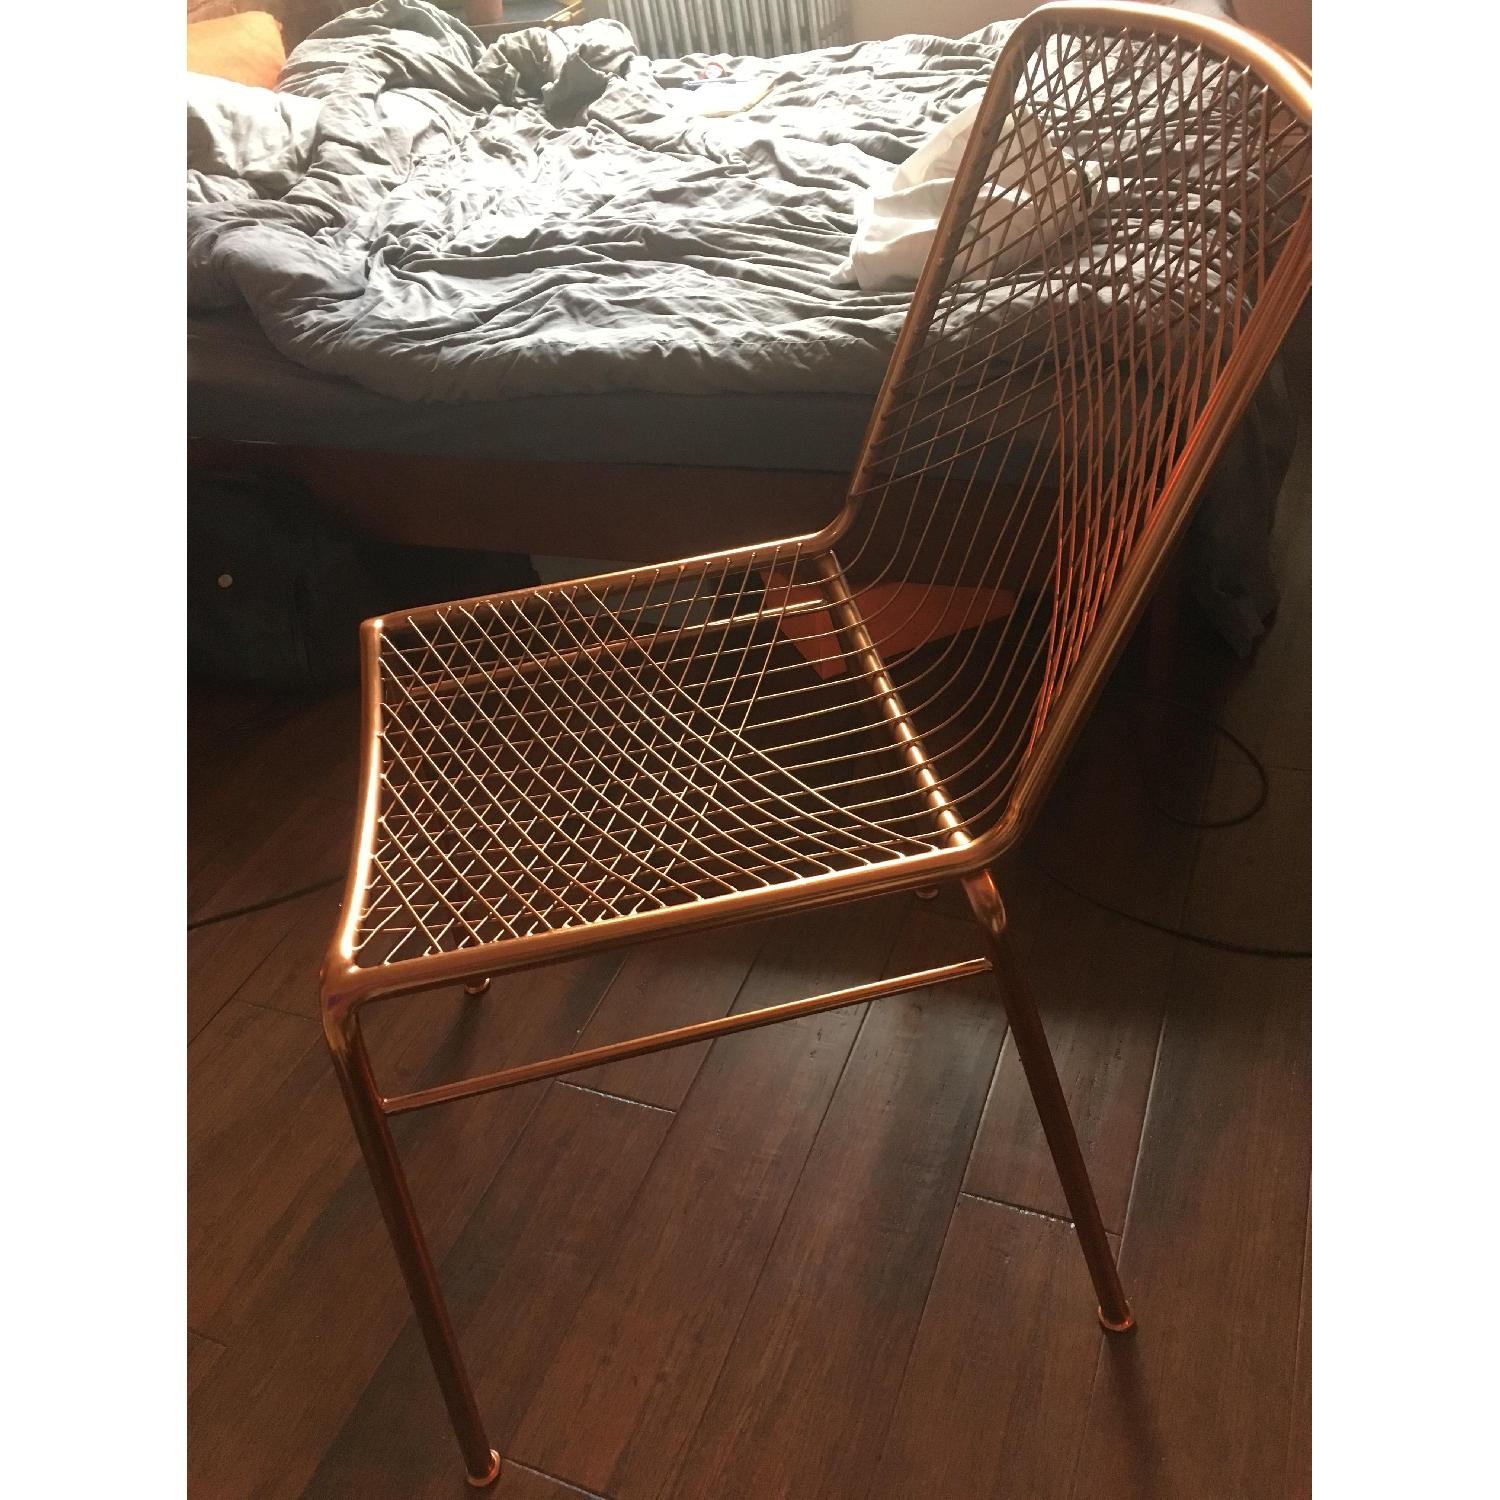 mid century modern wire chair black and white styling cb2 beta rose gold aptdeco